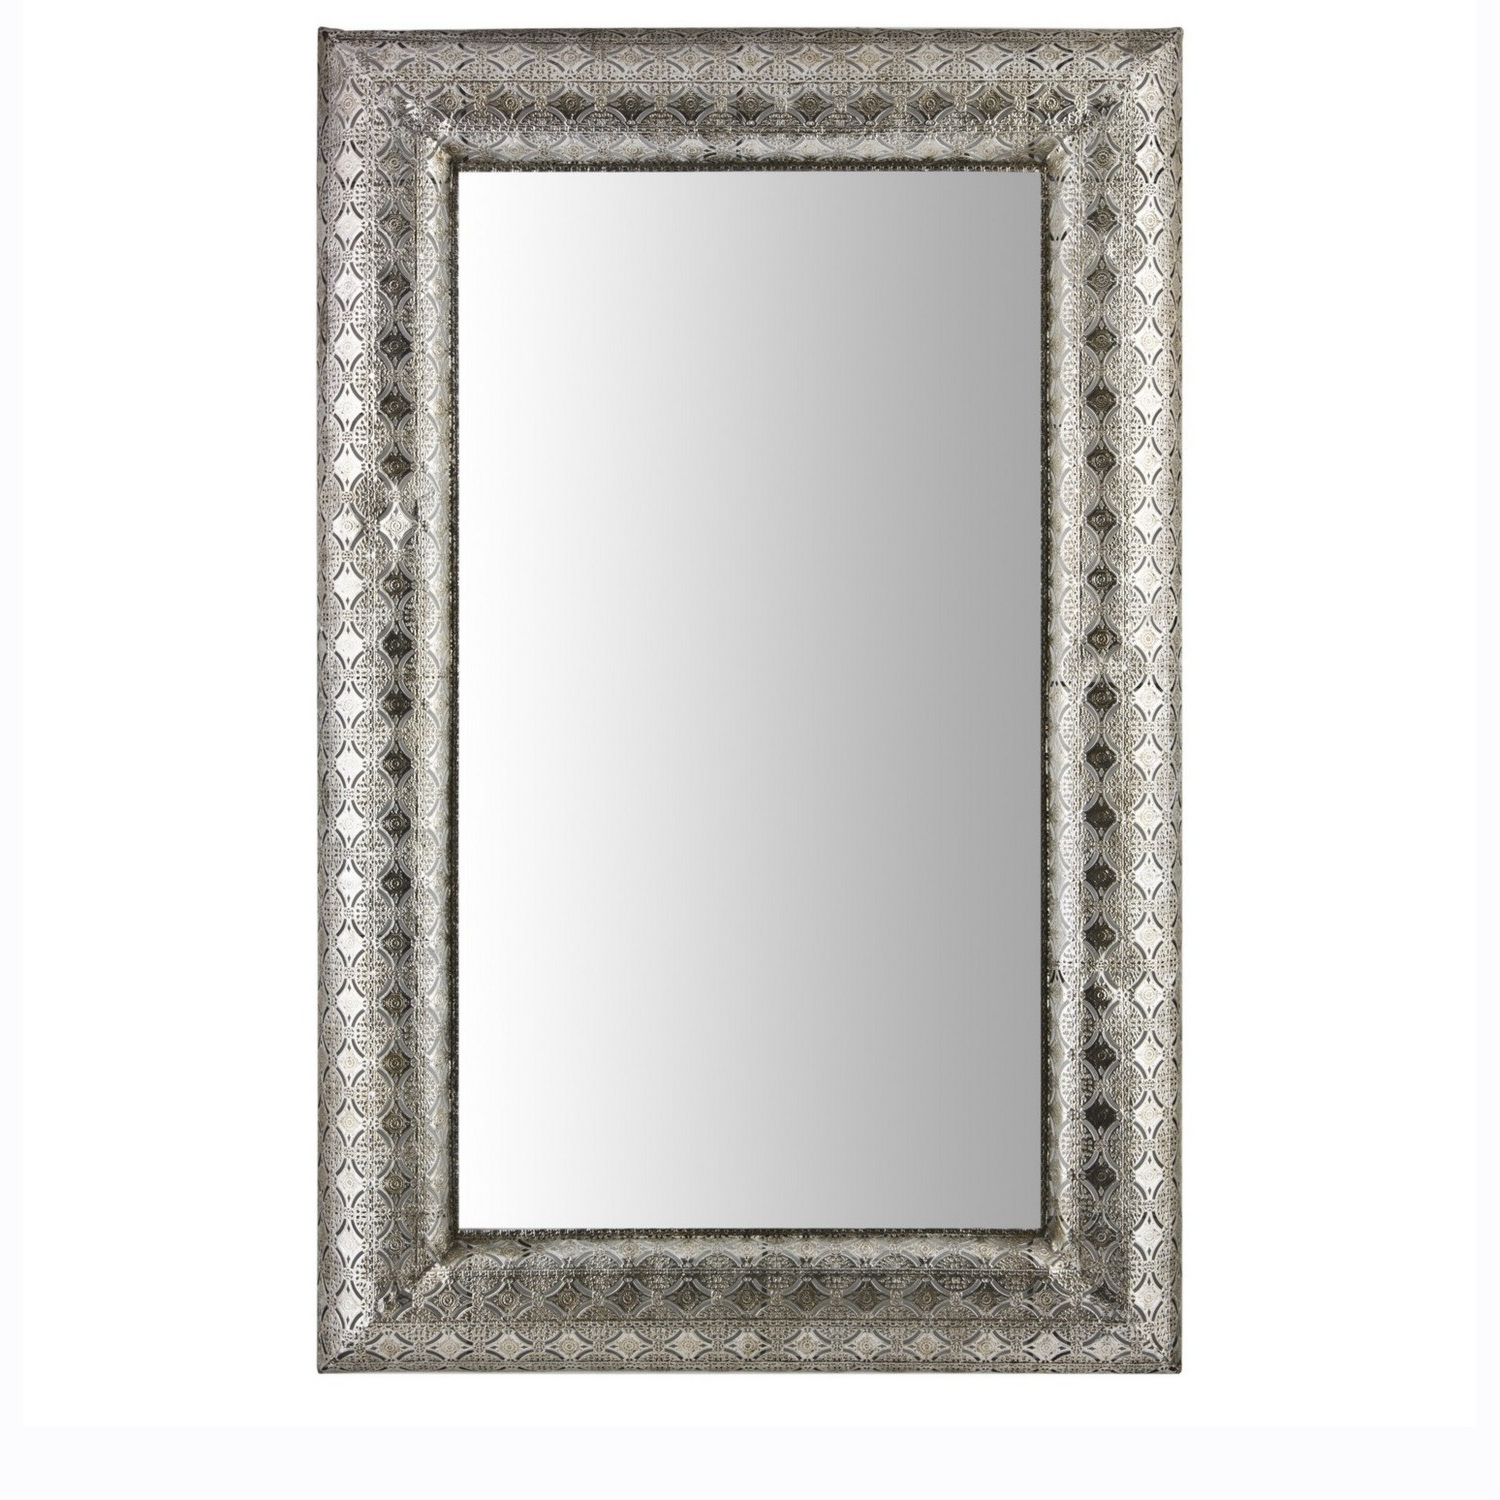 Latest Full Length Wavy Wall Mirrors With Mirrors (View 12 of 20)